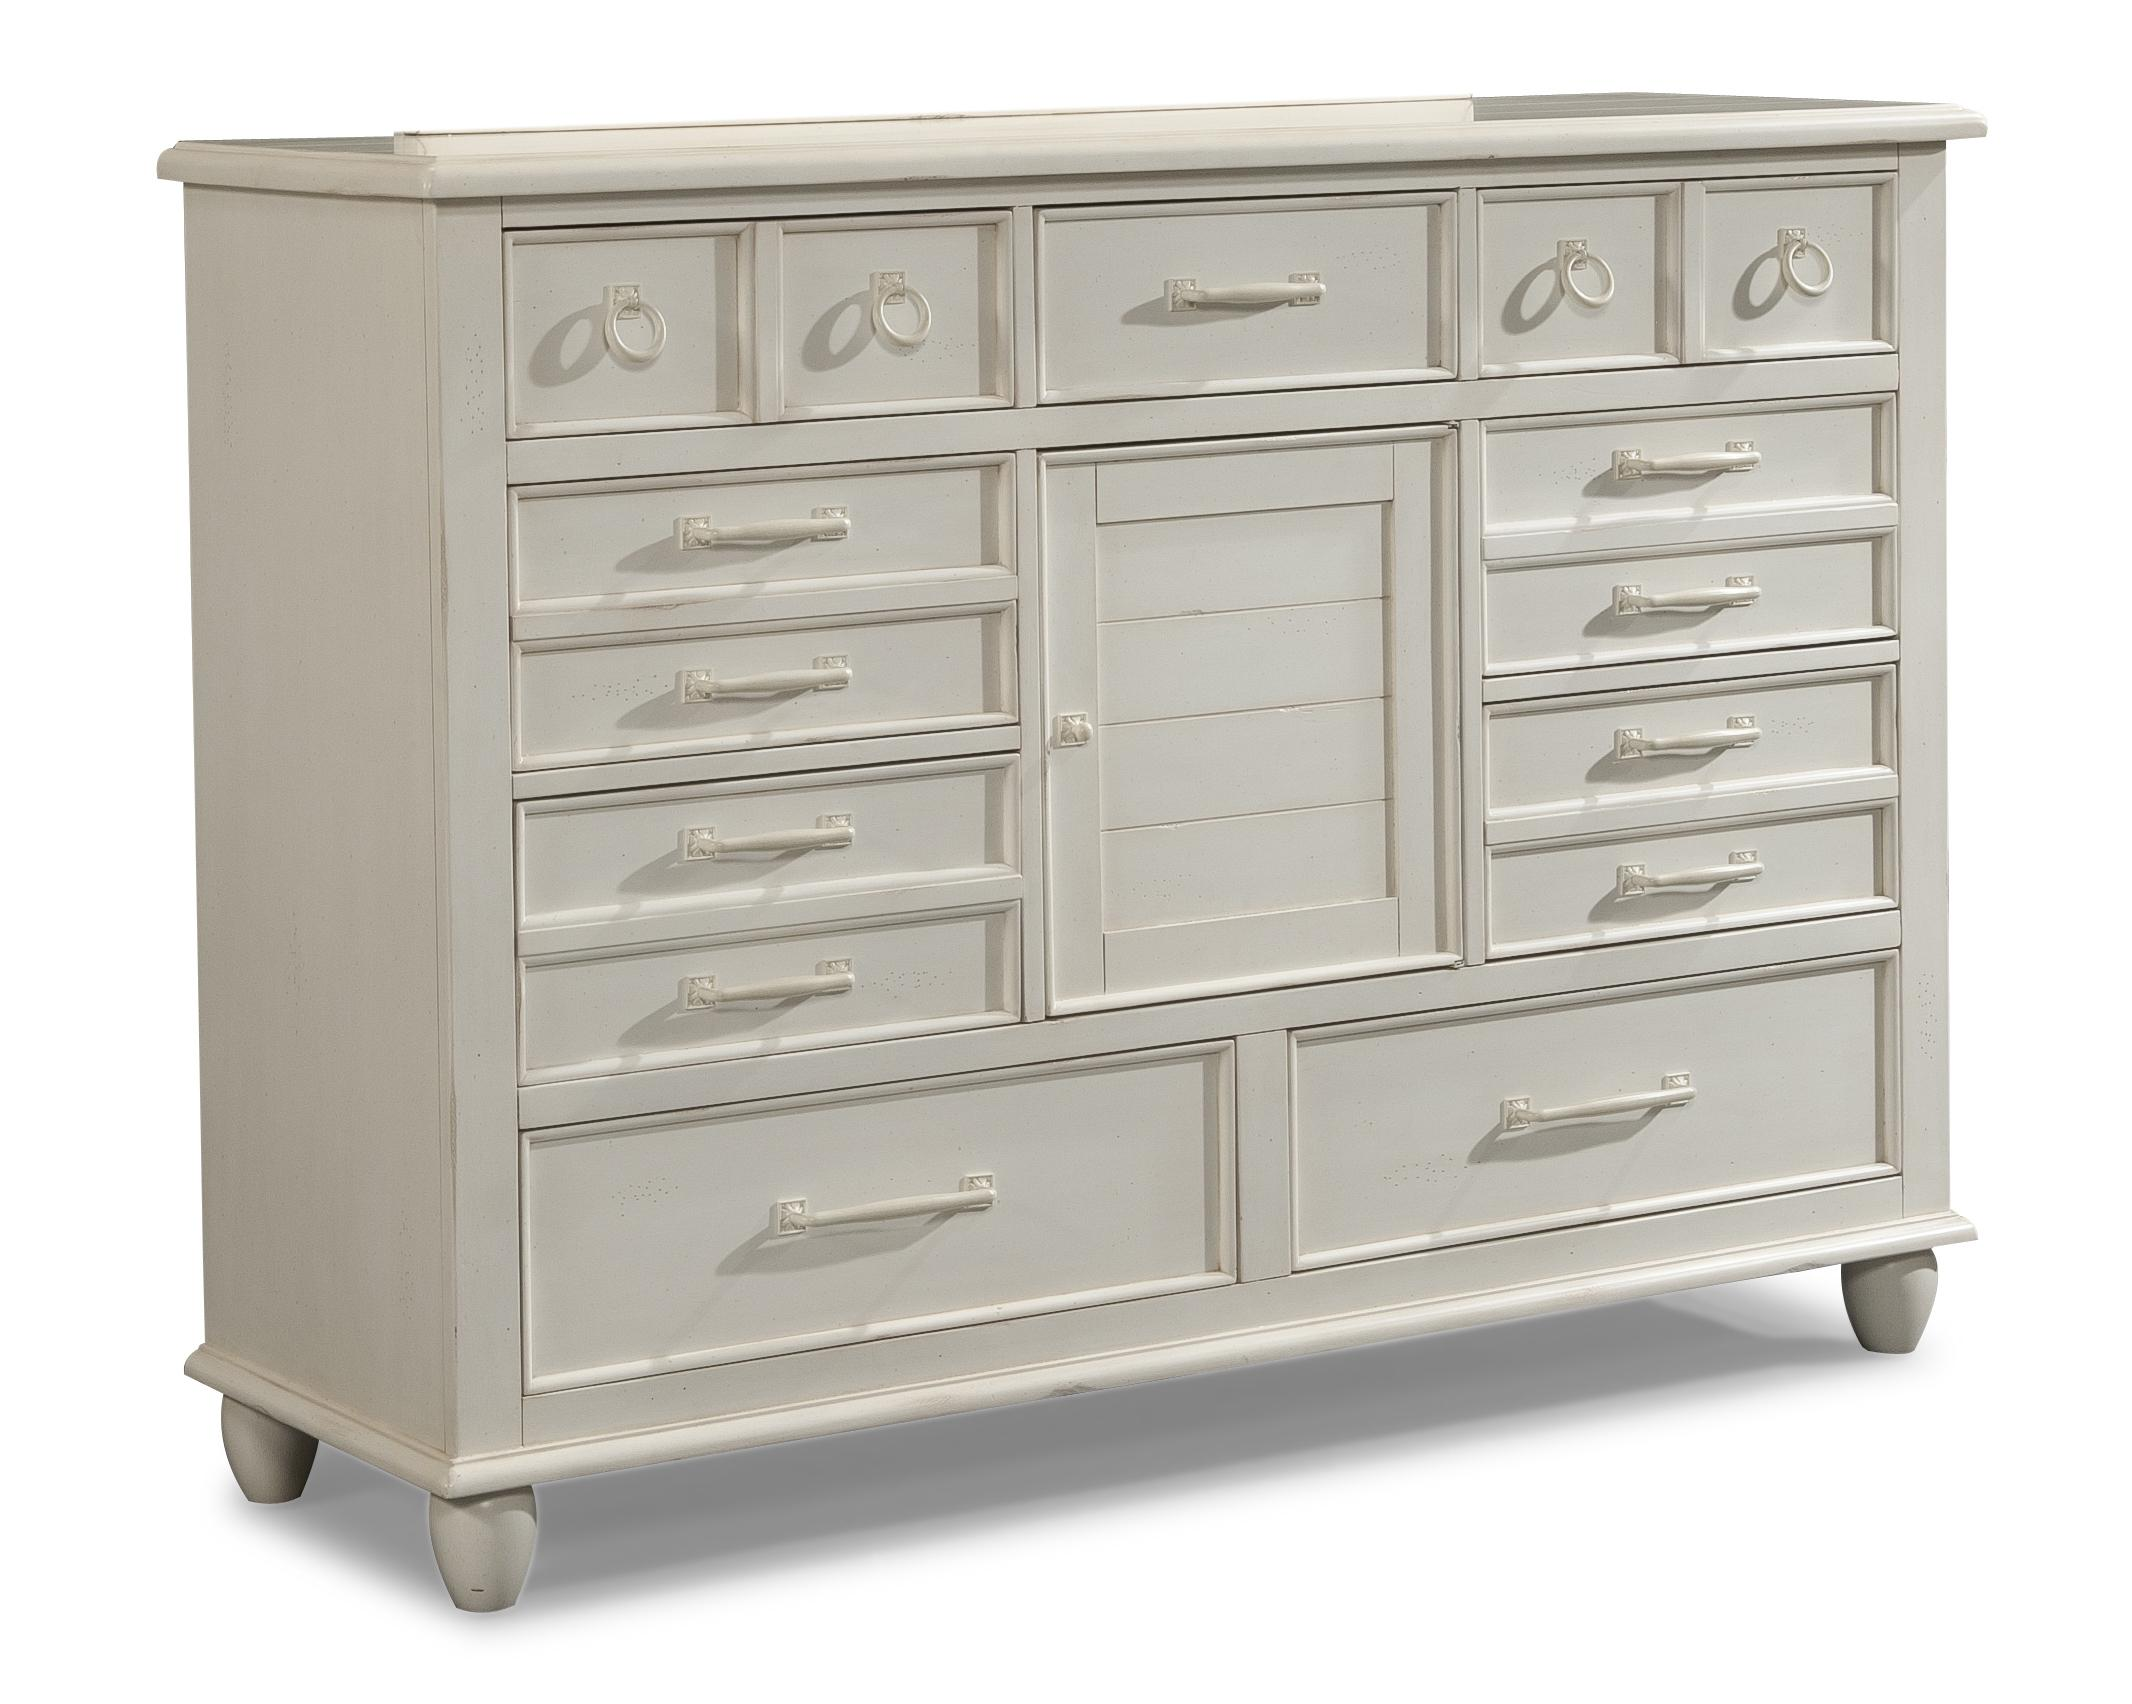 Easton Collection Sea Breeze White Dresser - Item Number: 424-650 DRES